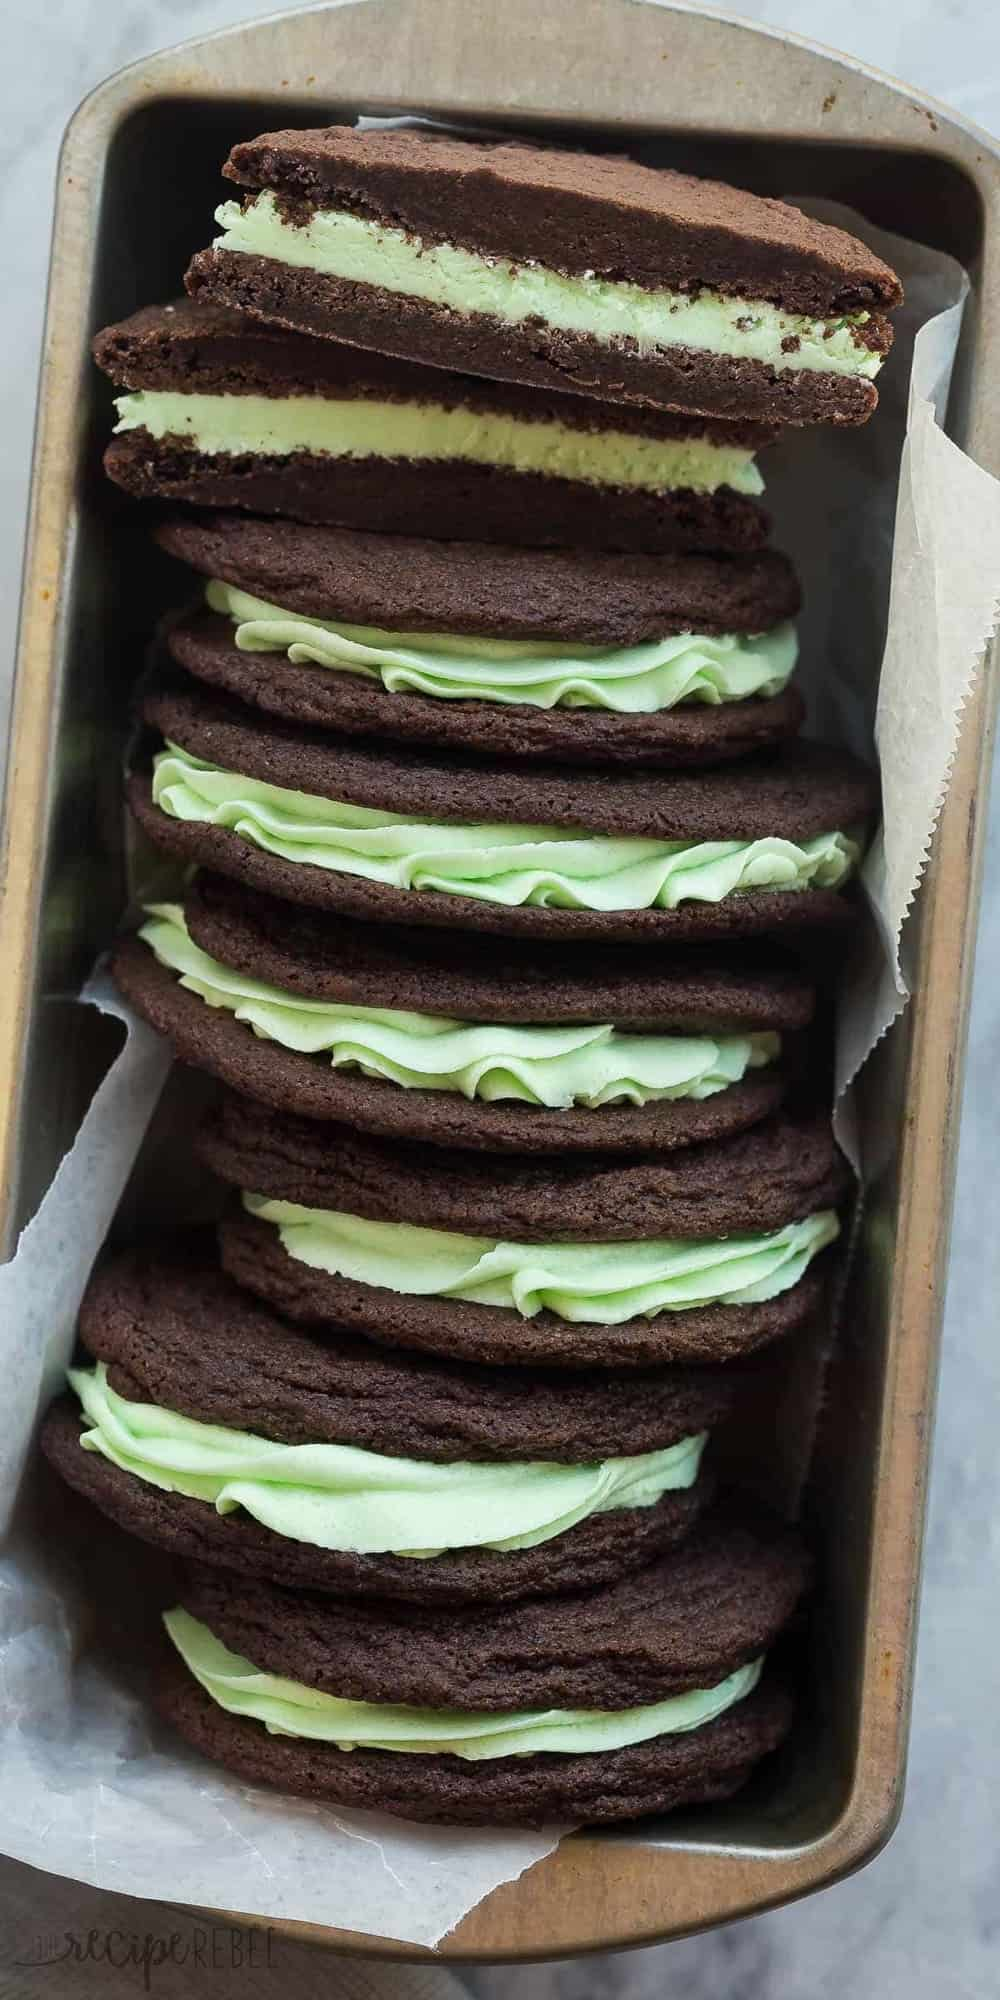 These Homemade Mint Chocolate Oreos have a homemade fudgy chocolate cookie and are filled with mint buttercream. They have the perfect cookie to frosting ratio for sandwich cookies!